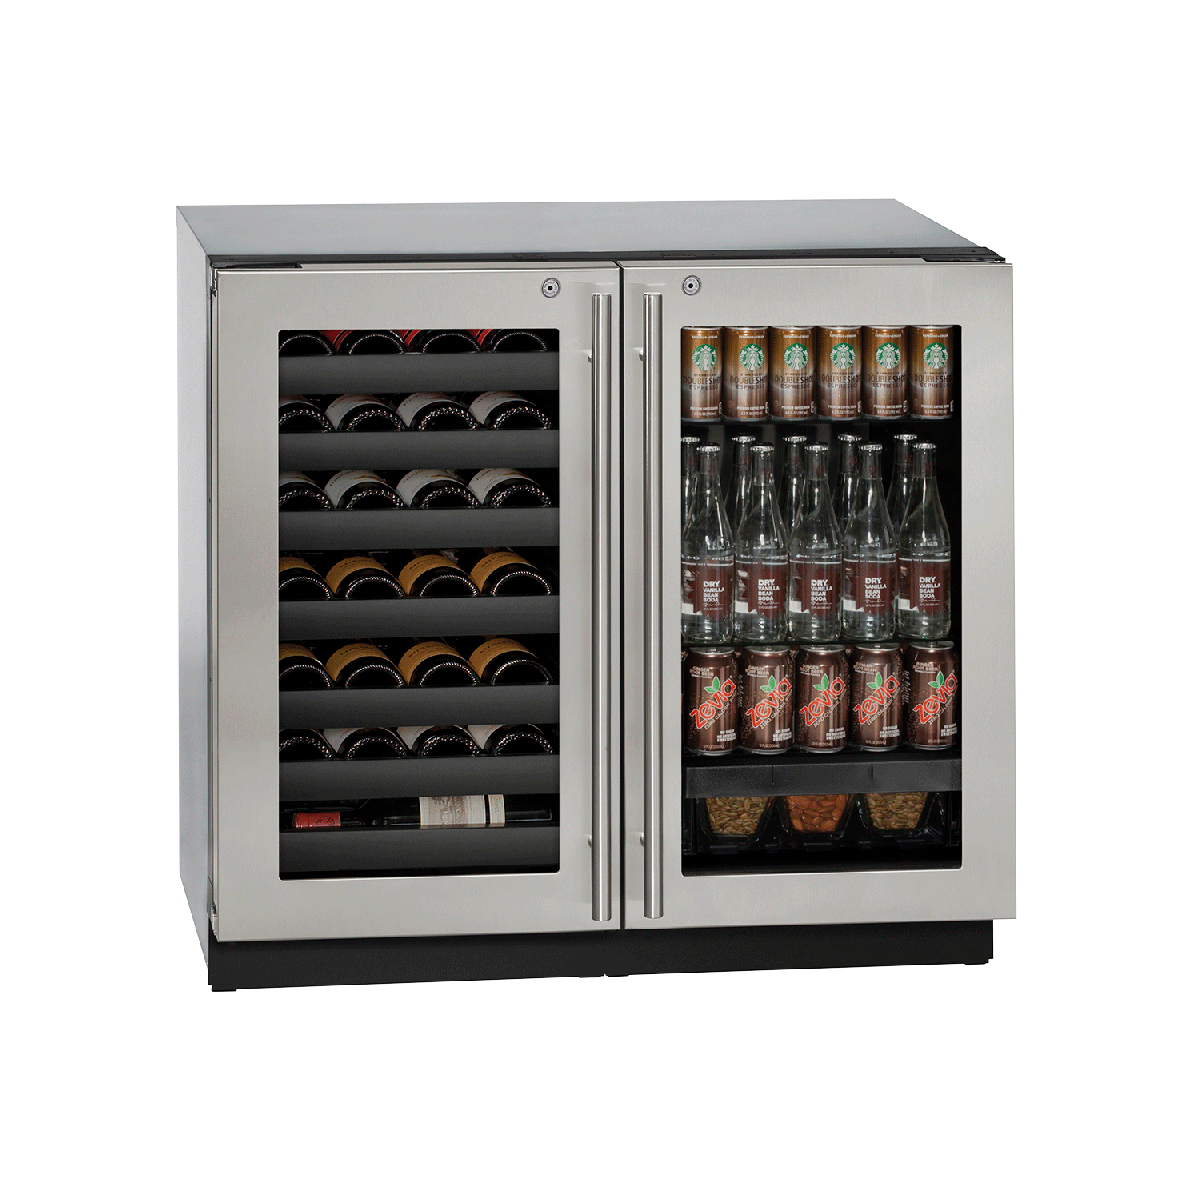 U Line U 3036bvwcs 13b Stainless Steel 36 Inch Wide 123 Can Capacity Beverage Center With 79 12 Oz Bottle Capacity Wine Racks Lock And U Select Controls Wi Beverage Center Beverage Refrigerator Wine Rack